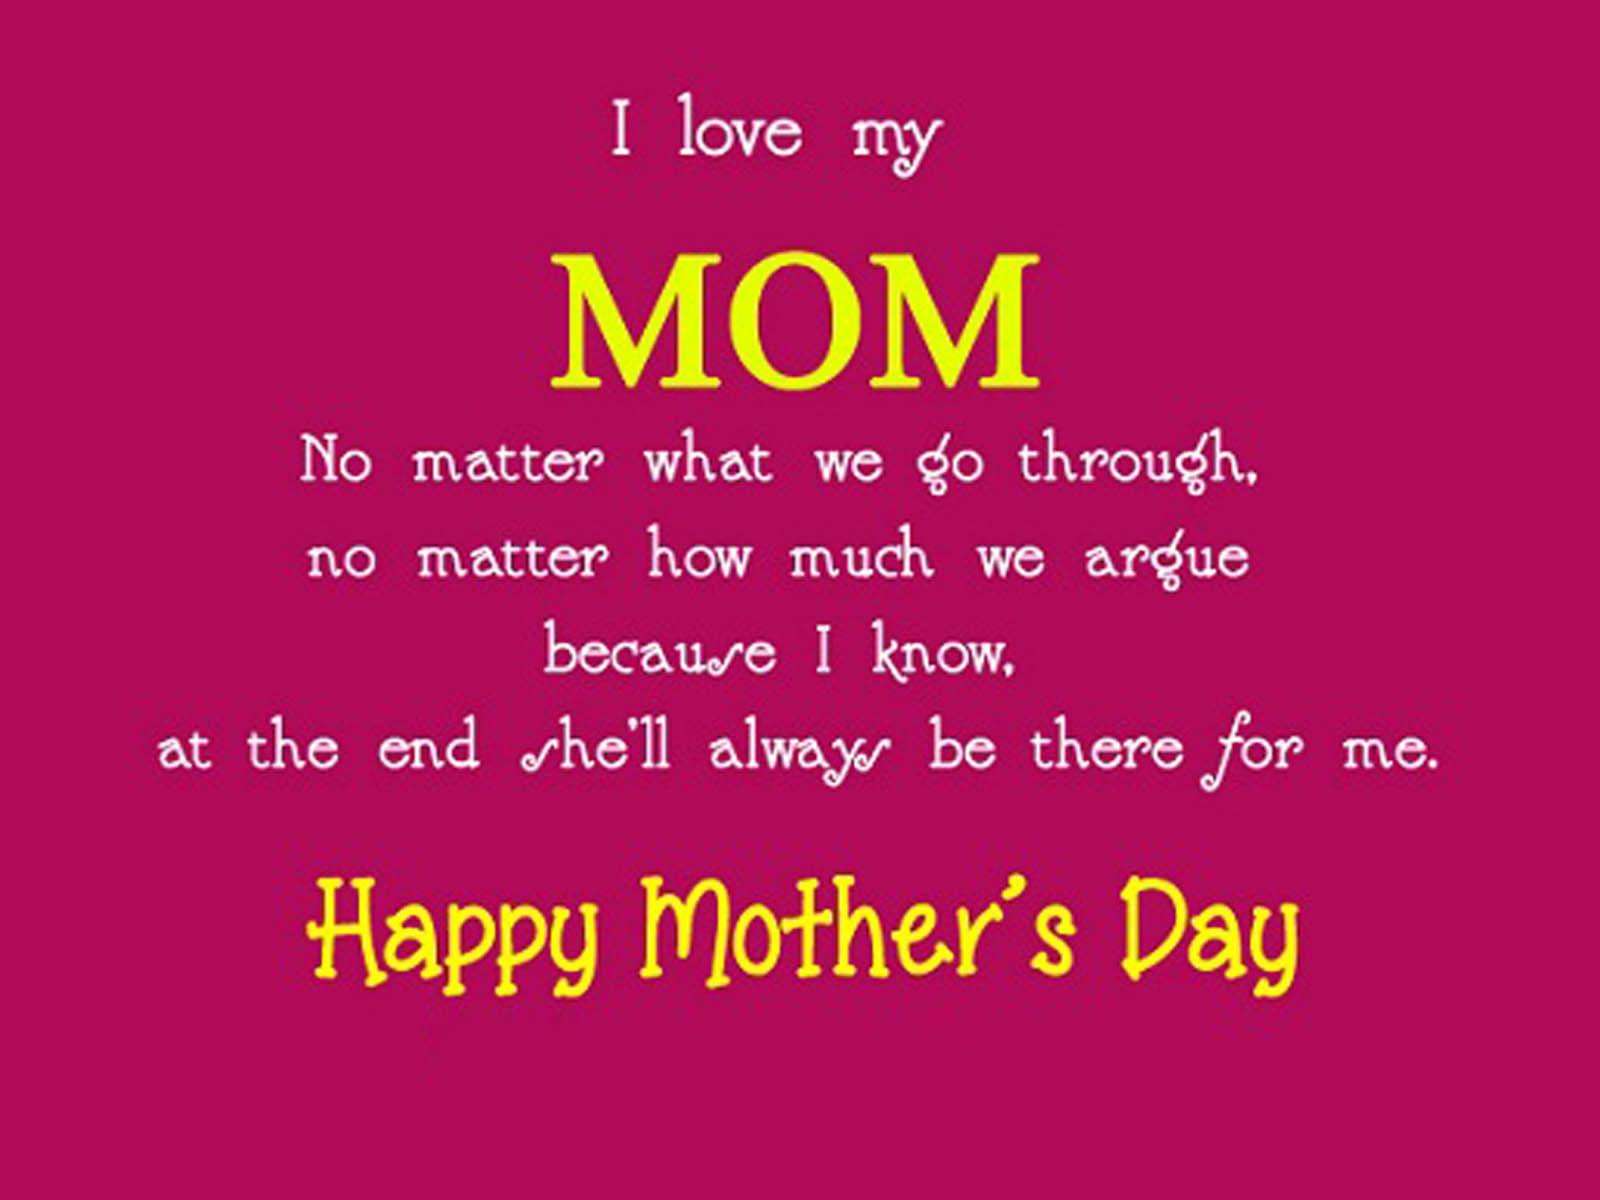 mother's day sayings | Happy Mother's Day Quotes | Mom's ...